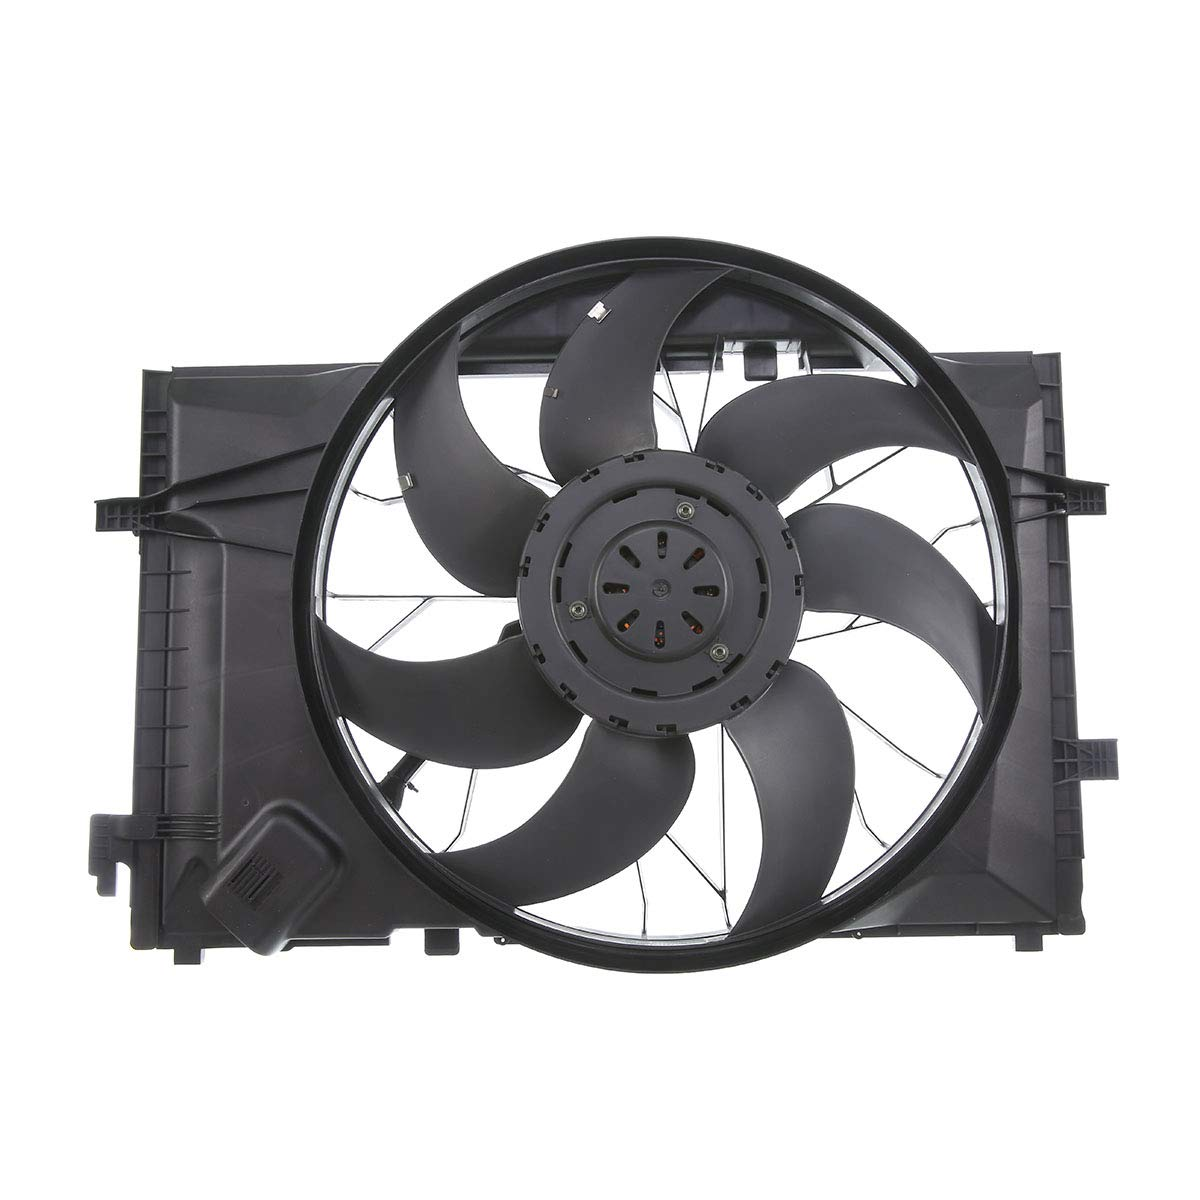 A-Premium Radiator Cooling Fan Assembly for Mercedes-Benz C230 C280 C320 C350 CLK320 350 2002-2009